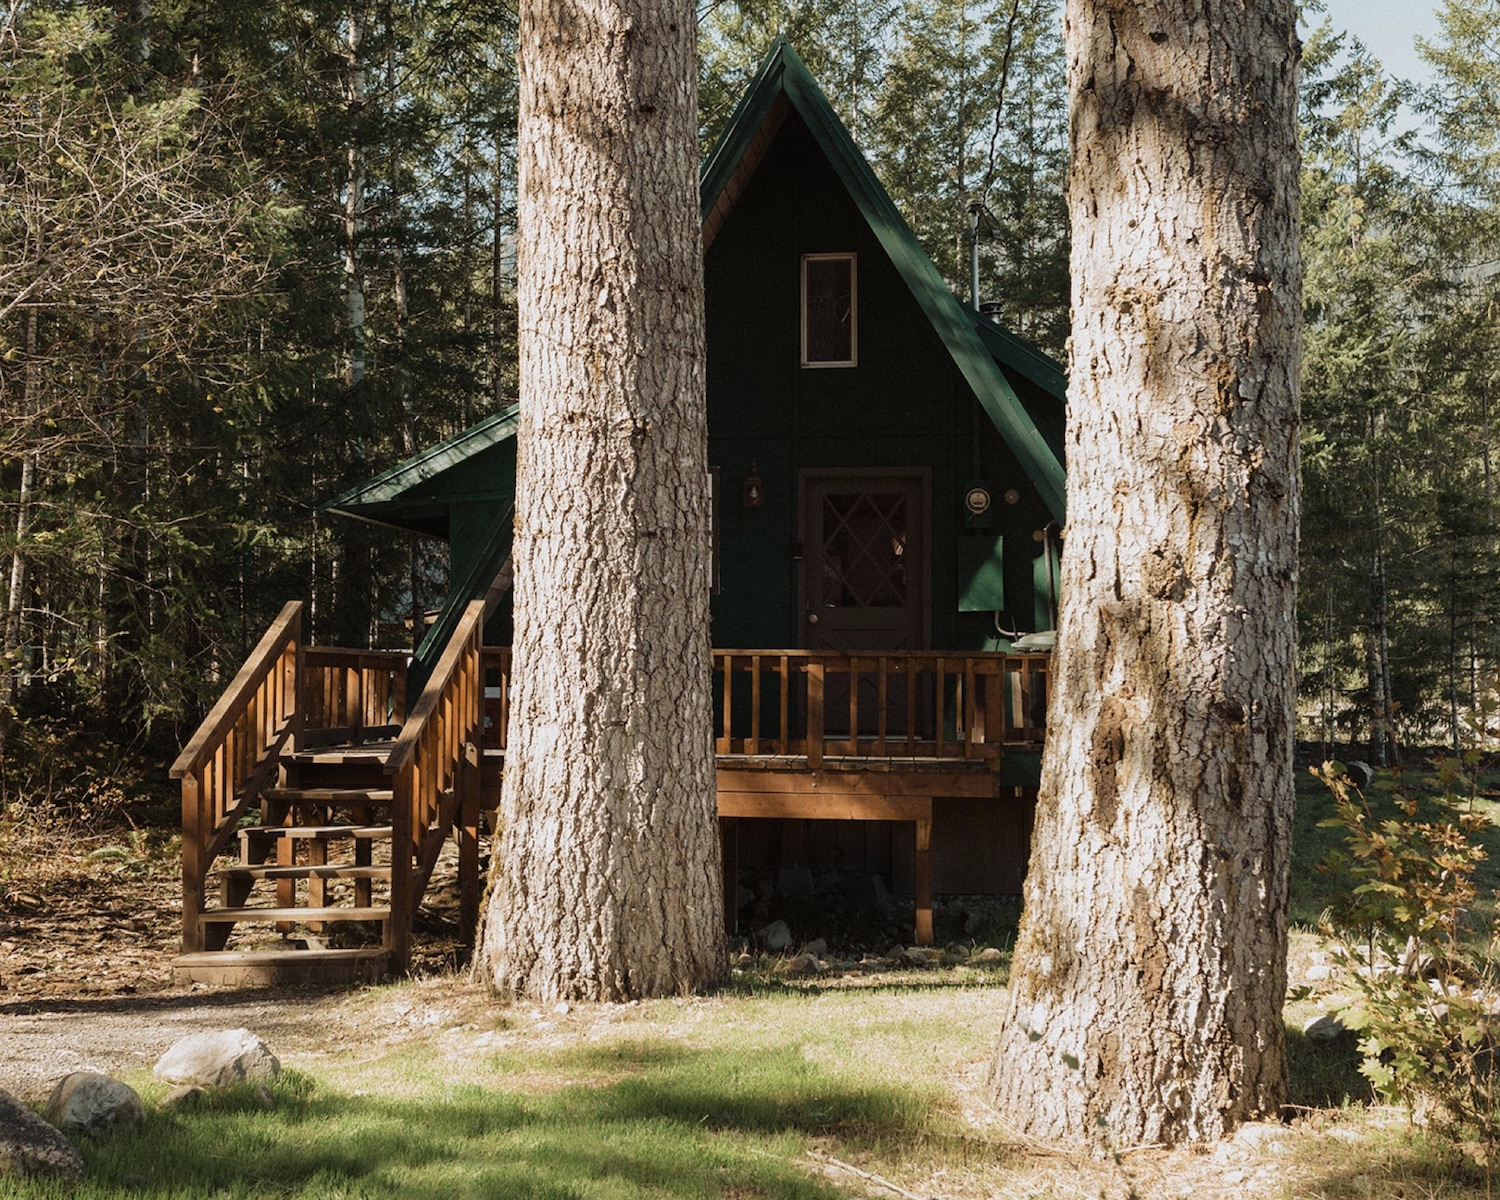 Outside view of the Gorgeous A-frame by Creek Waterfalls, a top Airbnb wedding venue in Washington State